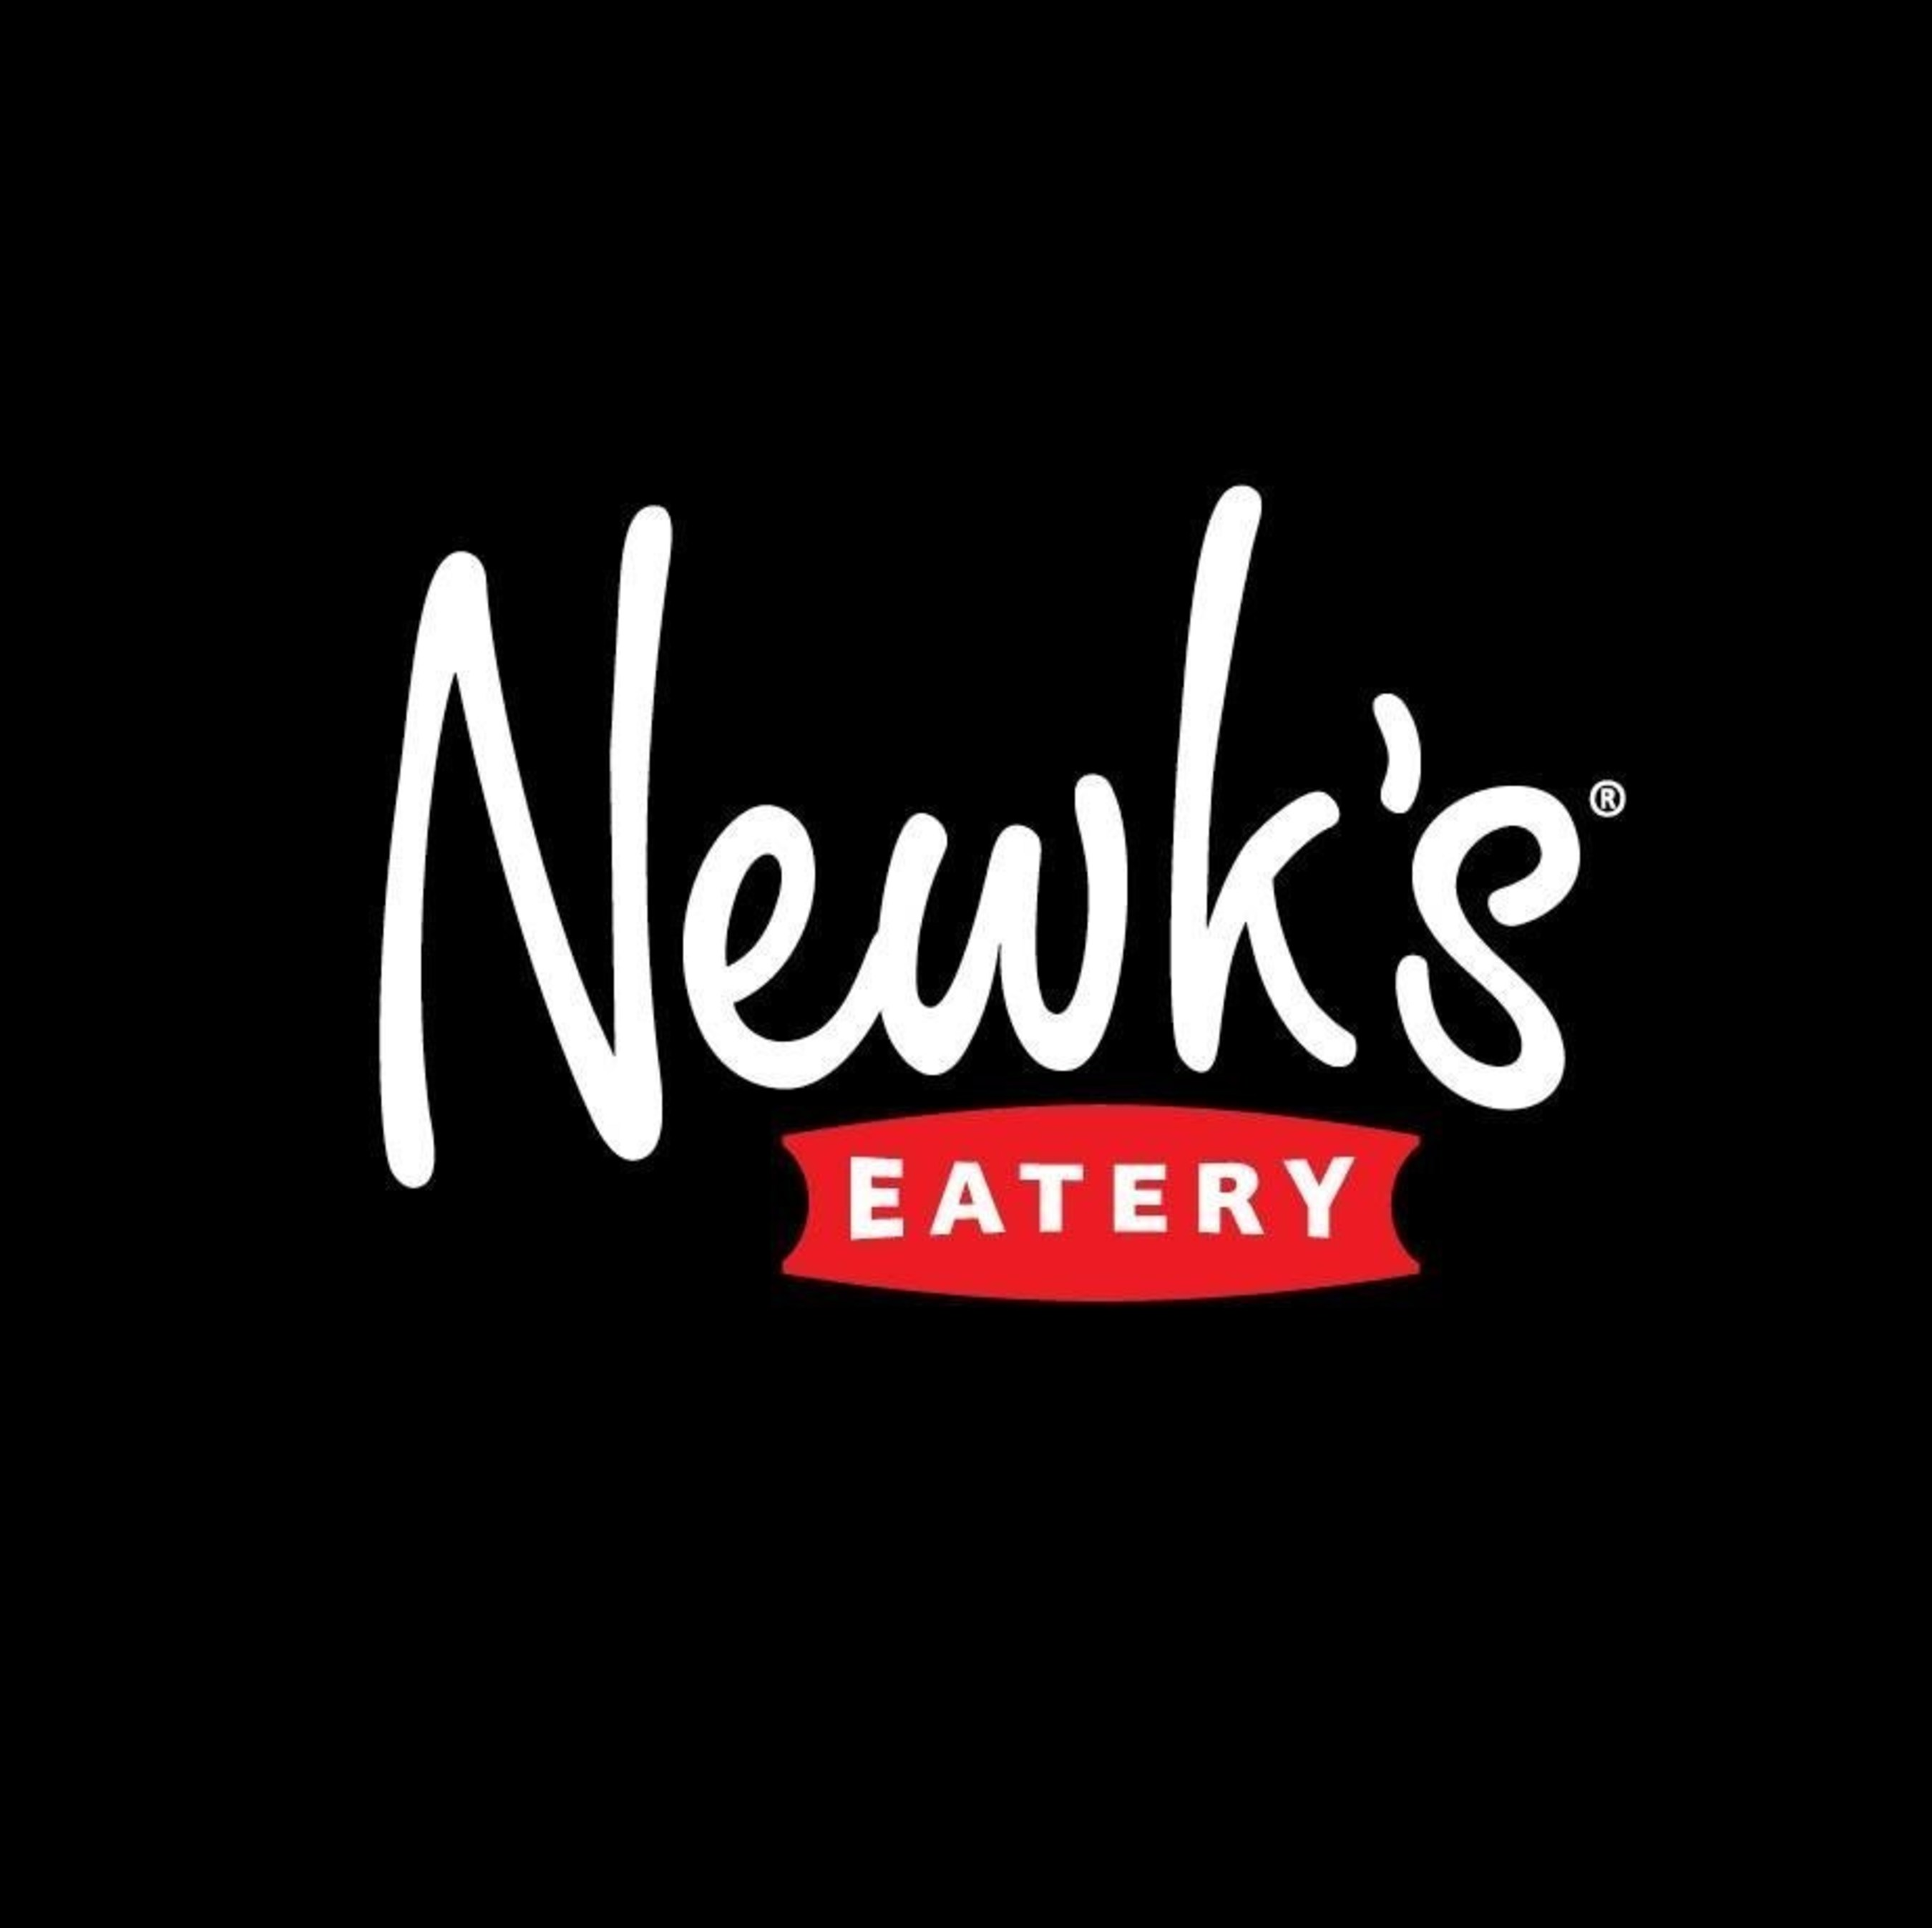 Newk's Eatery Named To QSR Magazine's Top Franchise Deals